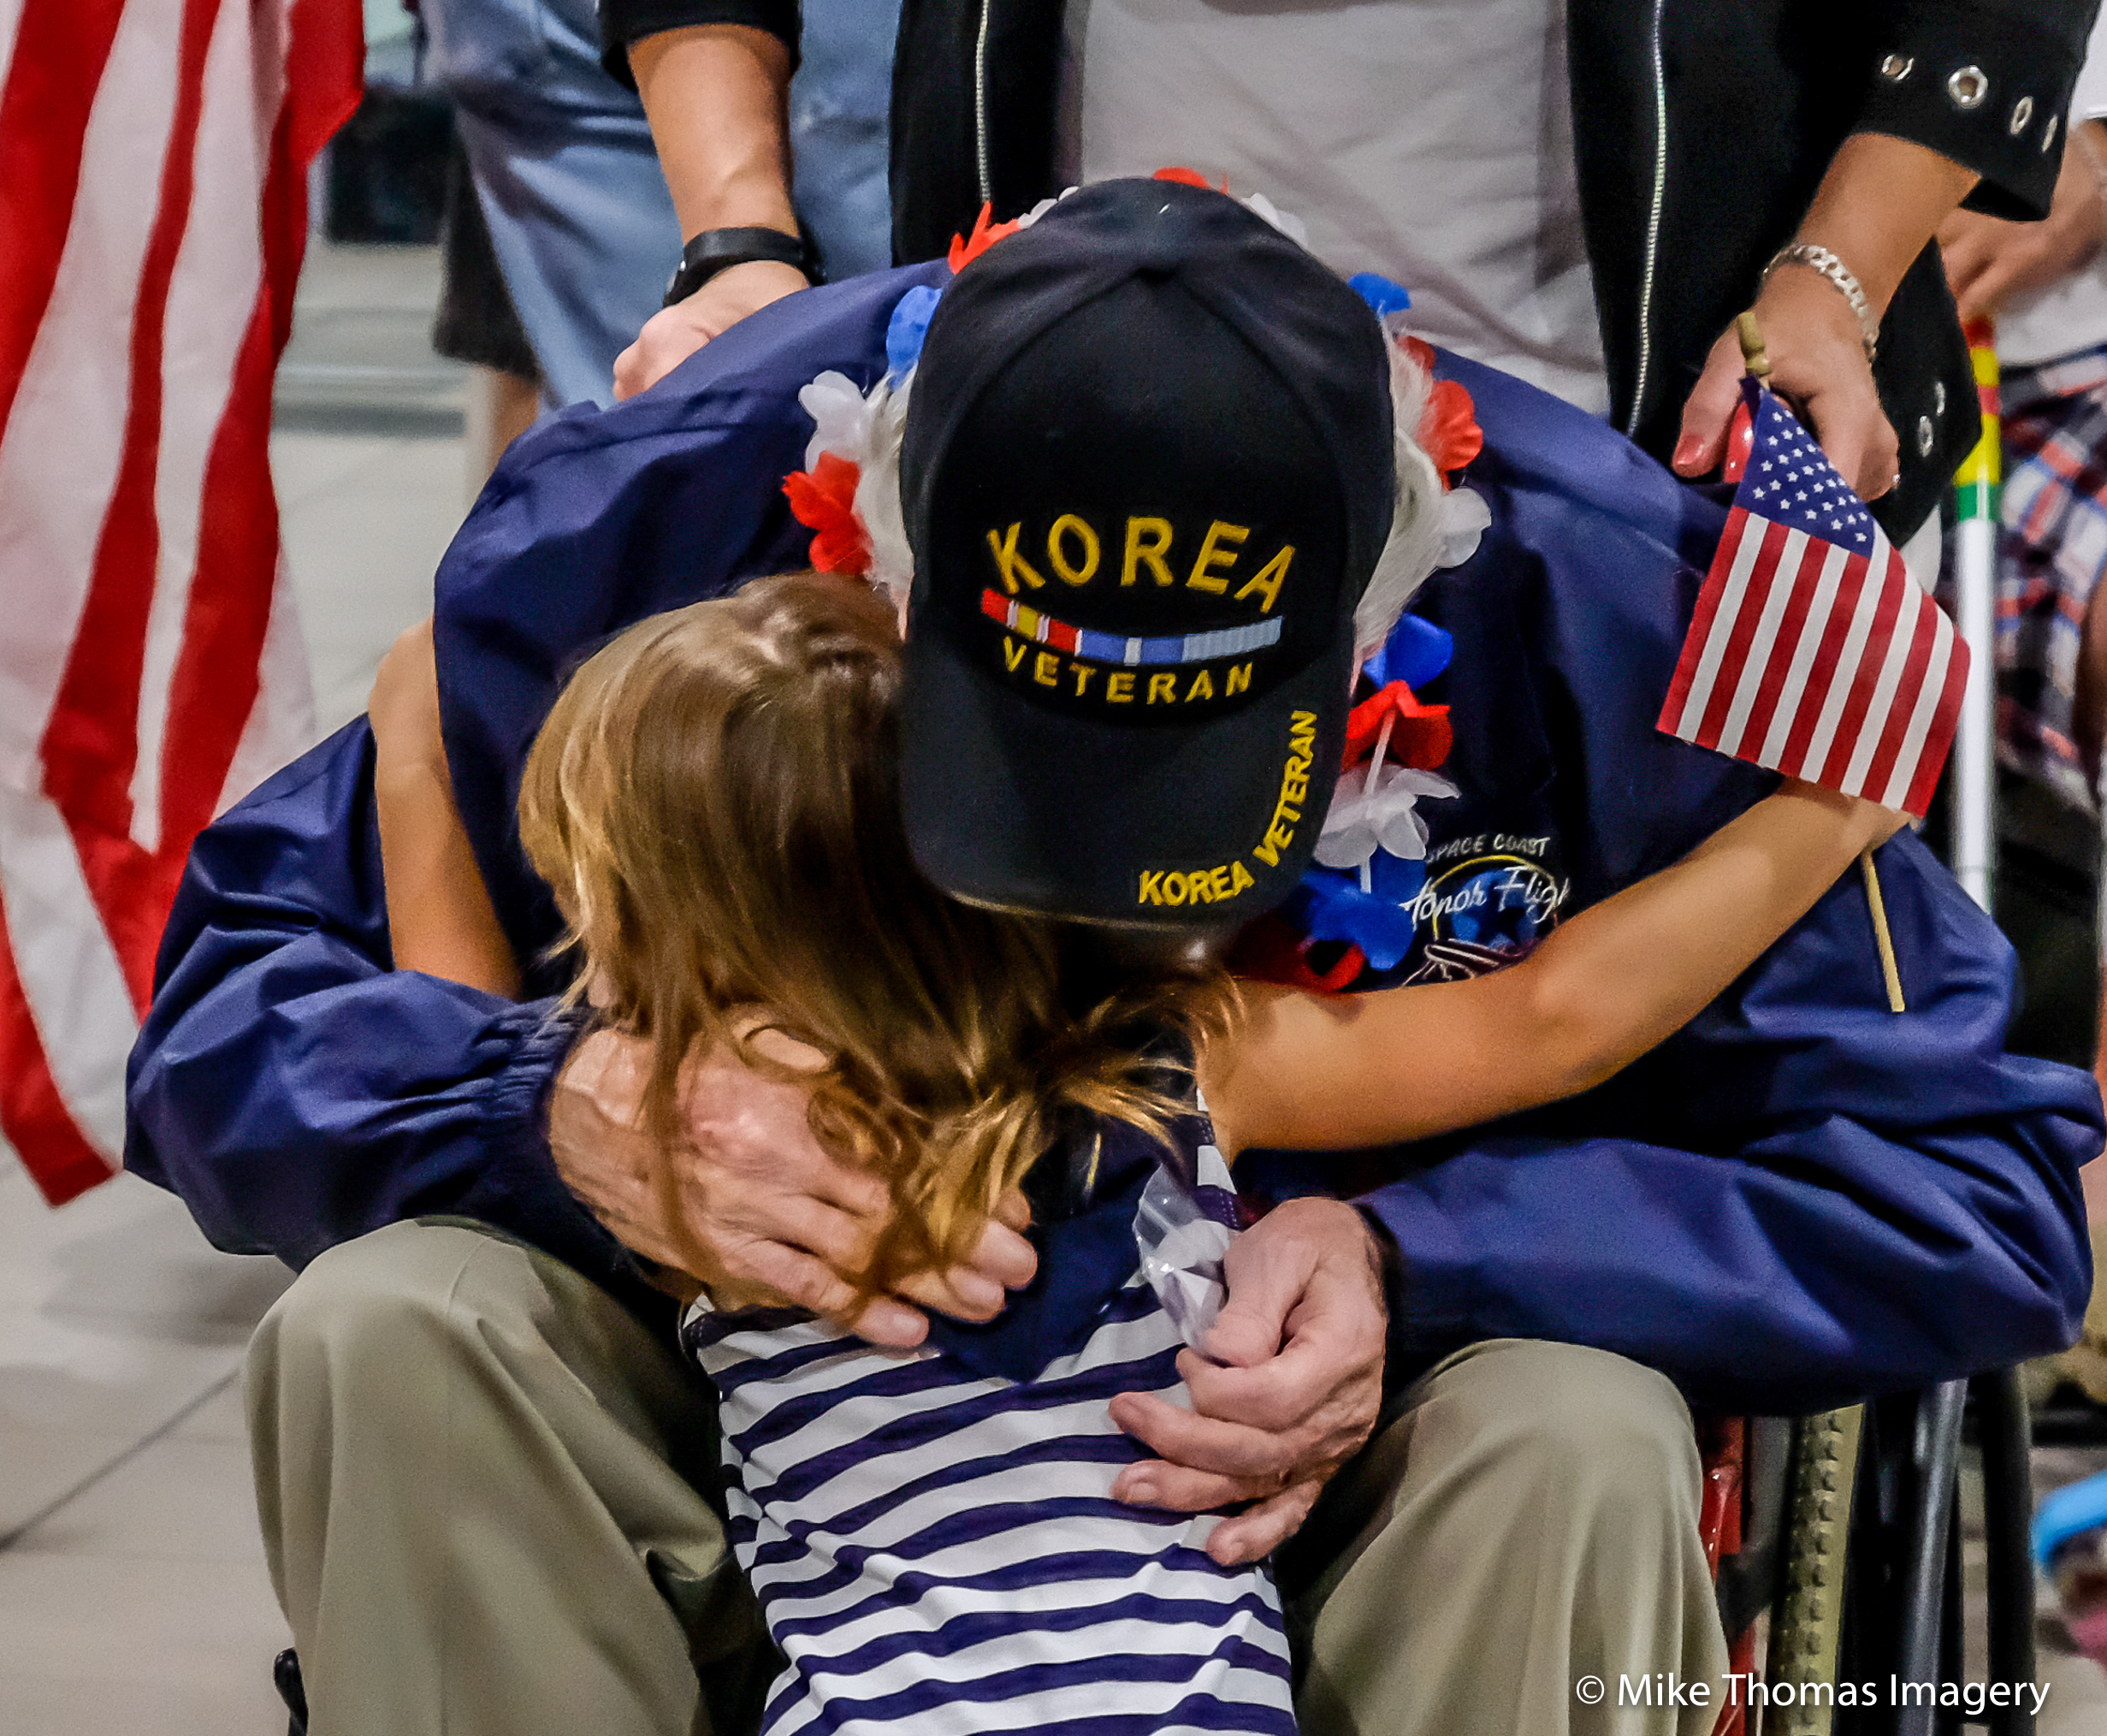 honor flight, veterans, military, ww ii, world war ii, korean war, vietnam